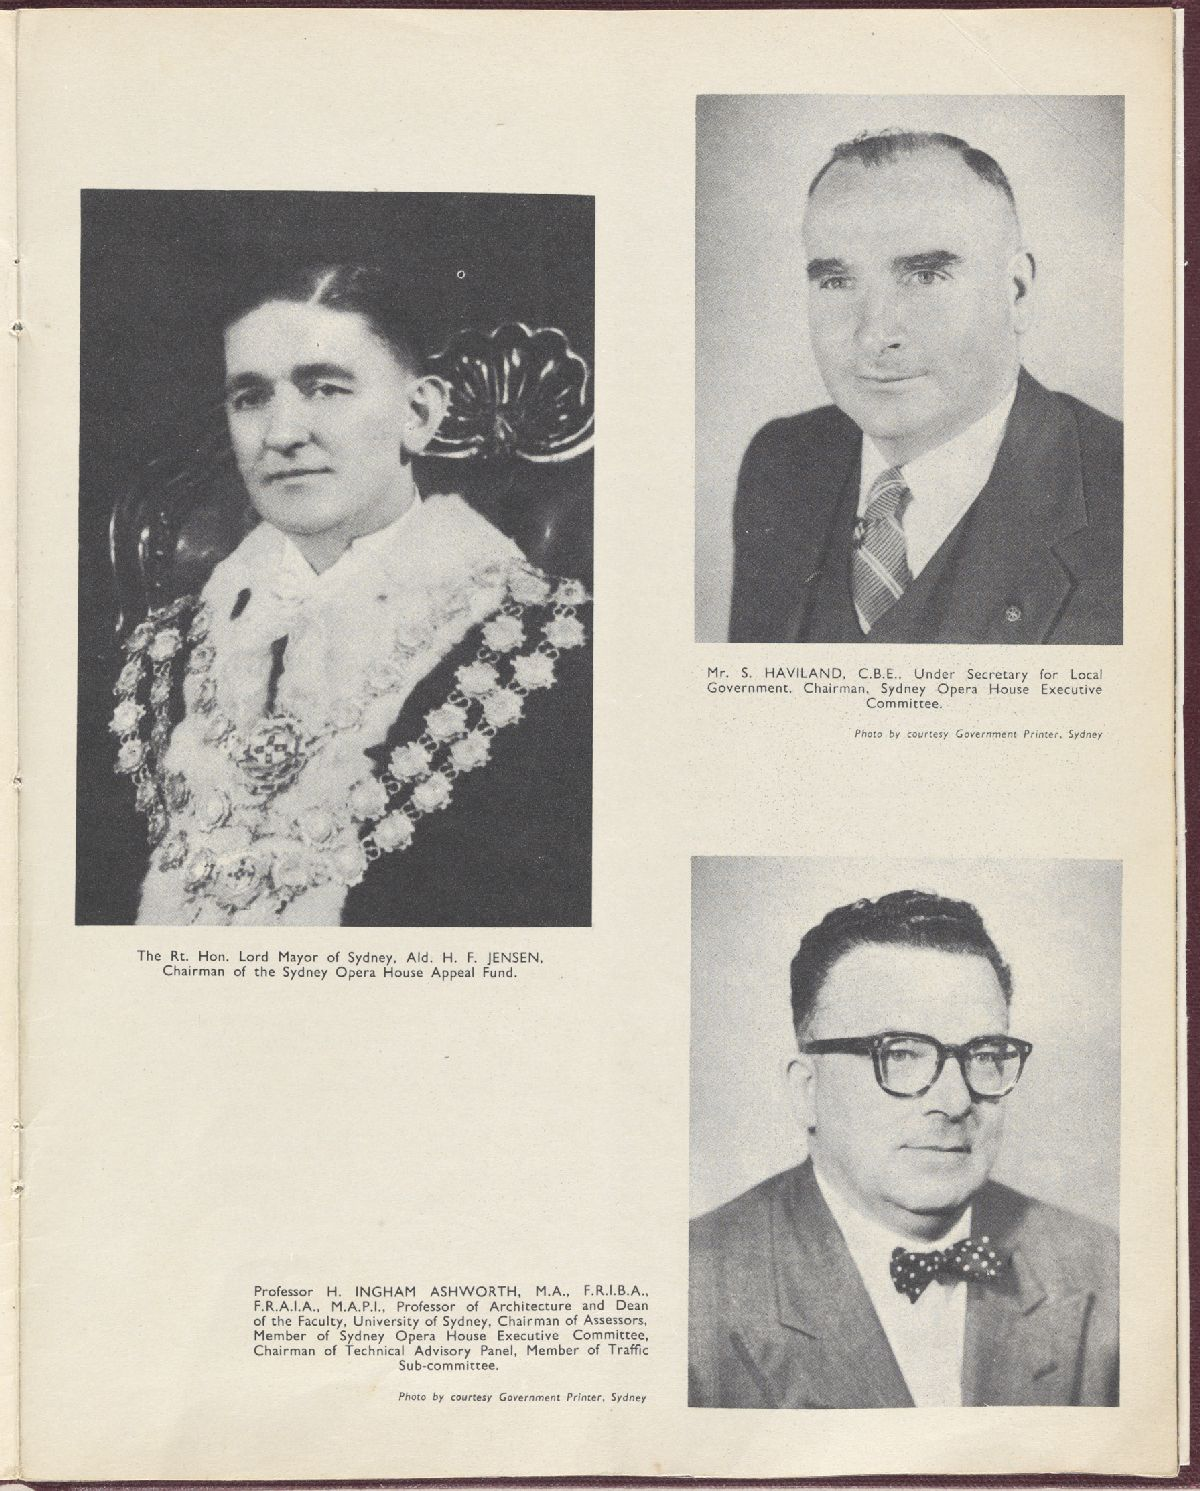 Photos of HF Jensen (Lord Mayor), S Haviland and H Ingham Ashworth. NRS12706, 2-8645A